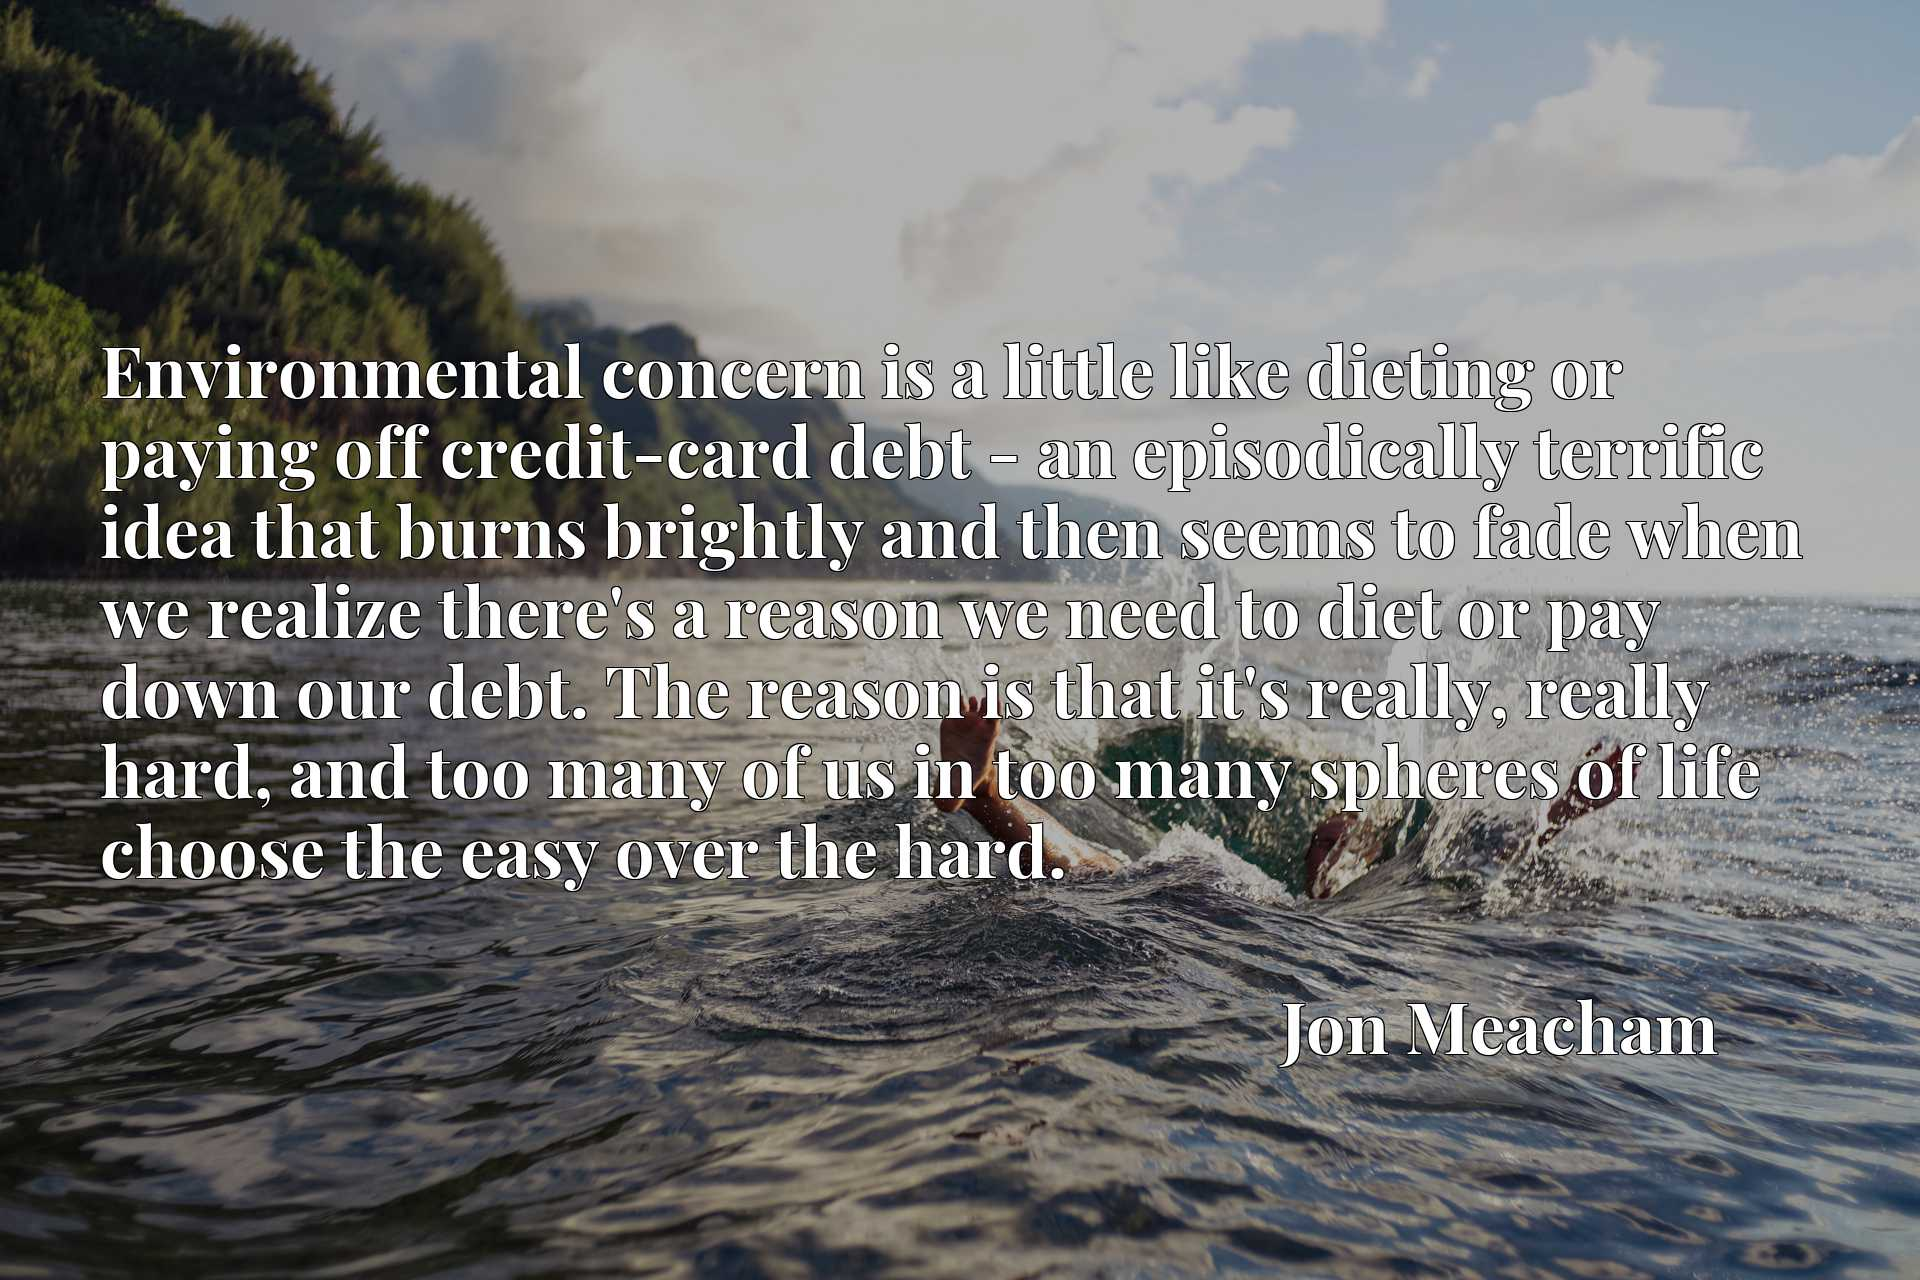 Environmental concern is a little like dieting or paying off credit-card debt - an episodically terrific idea that burns brightly and then seems to fade when we realize there's a reason we need to diet or pay down our debt. The reason is that it's really, really hard, and too many of us in too many spheres of life choose the easy over the hard.